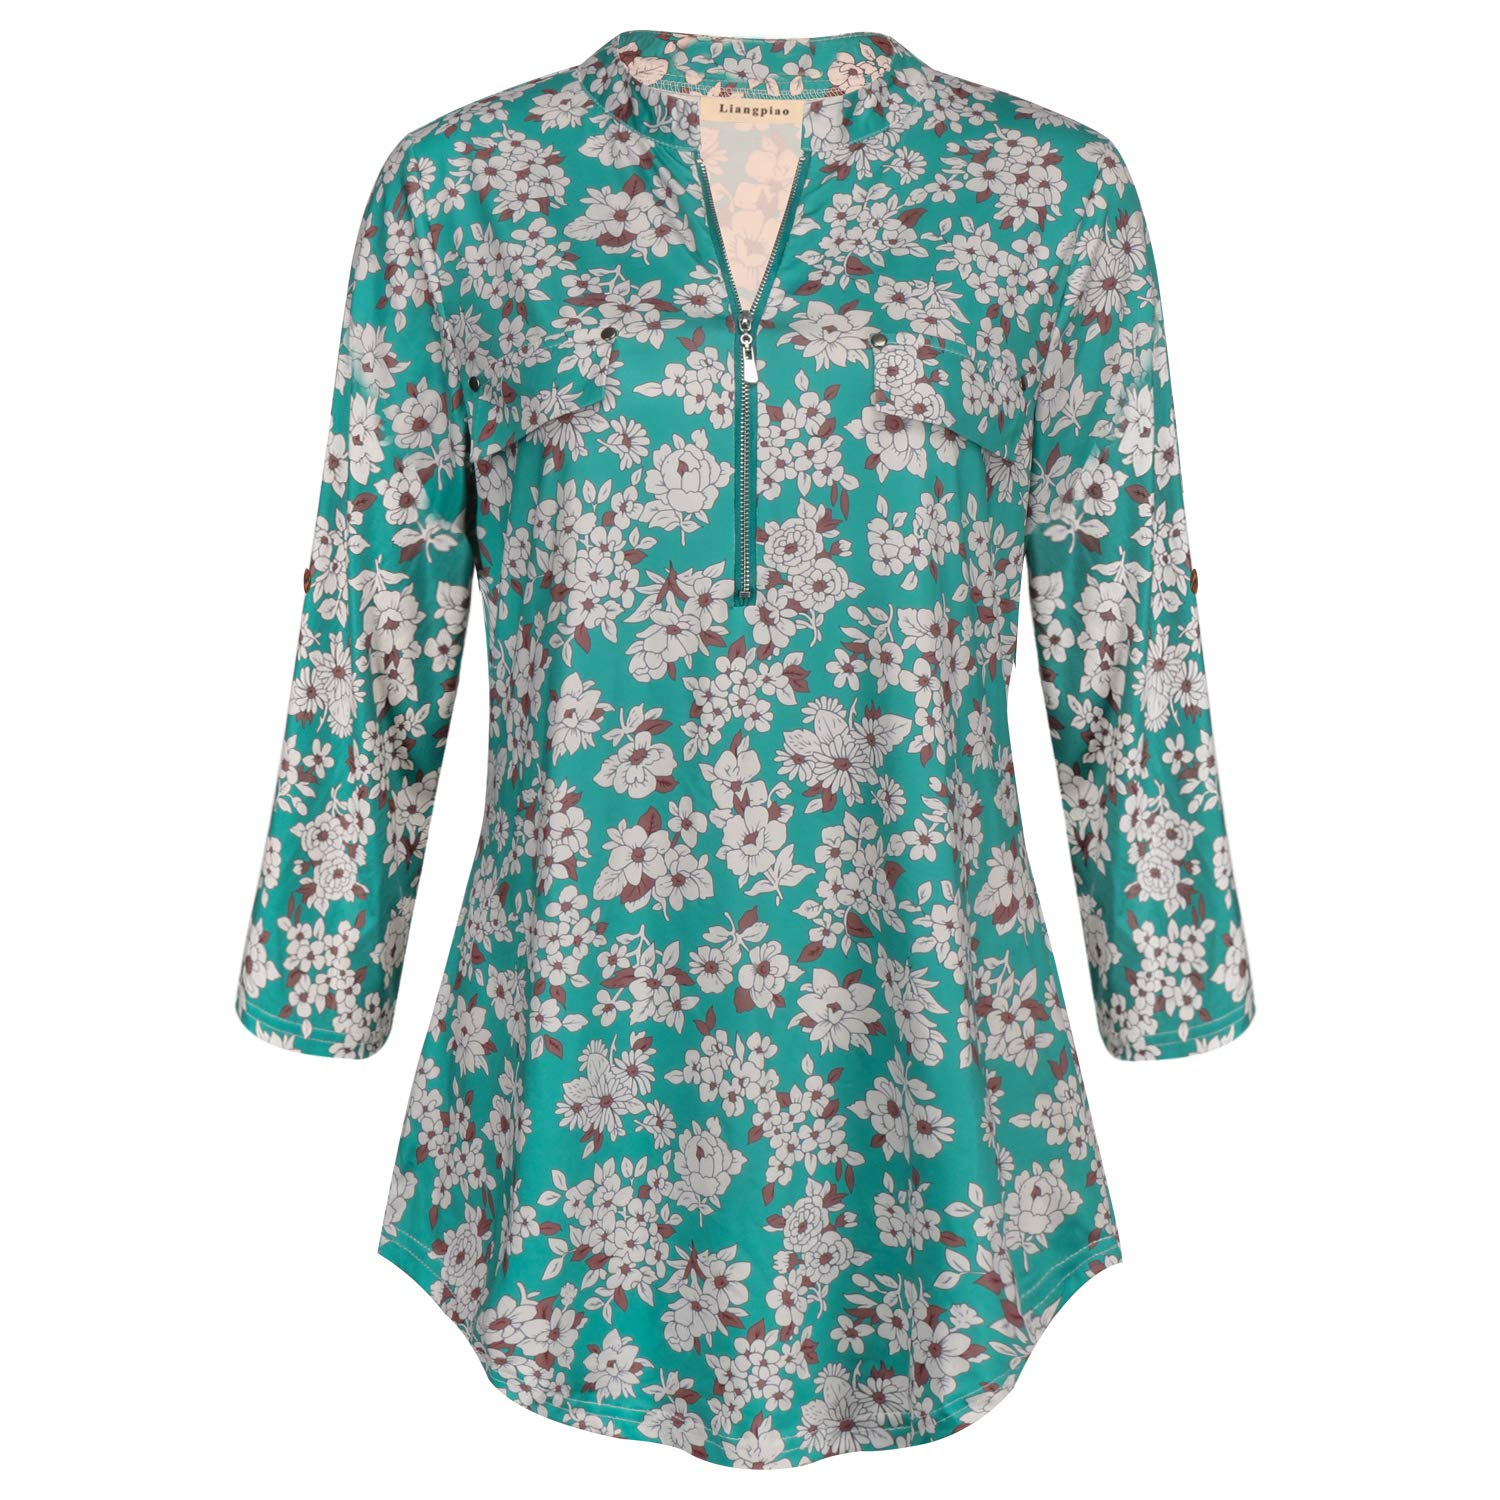 Liangpiao Womens Floral Tunic Tops 3//4 Roll up Sleeve Shirt Work Chiffon Blouse